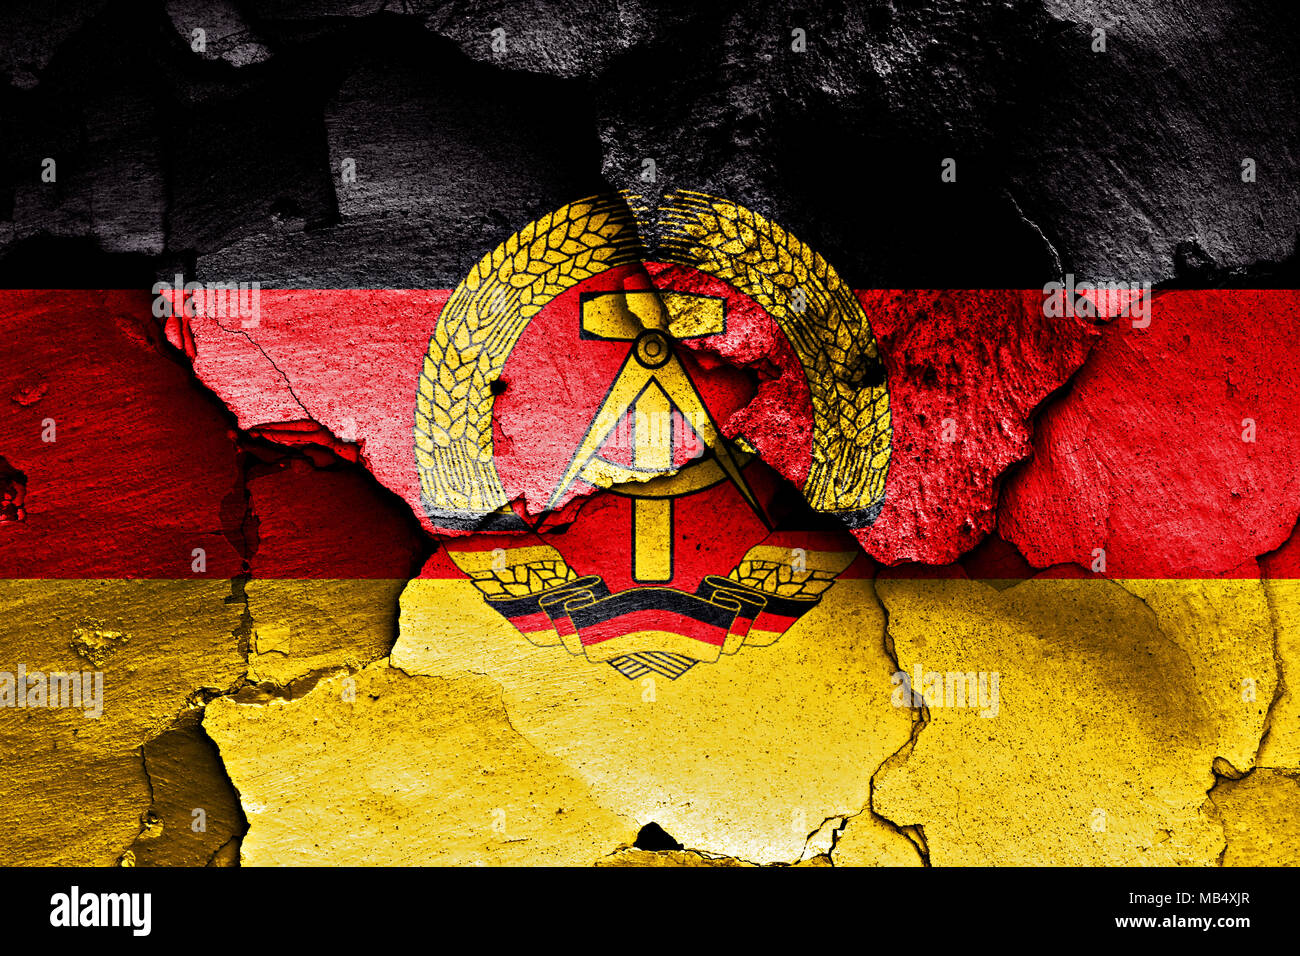 flag of East Germany painted on cracked wall - Stock Image